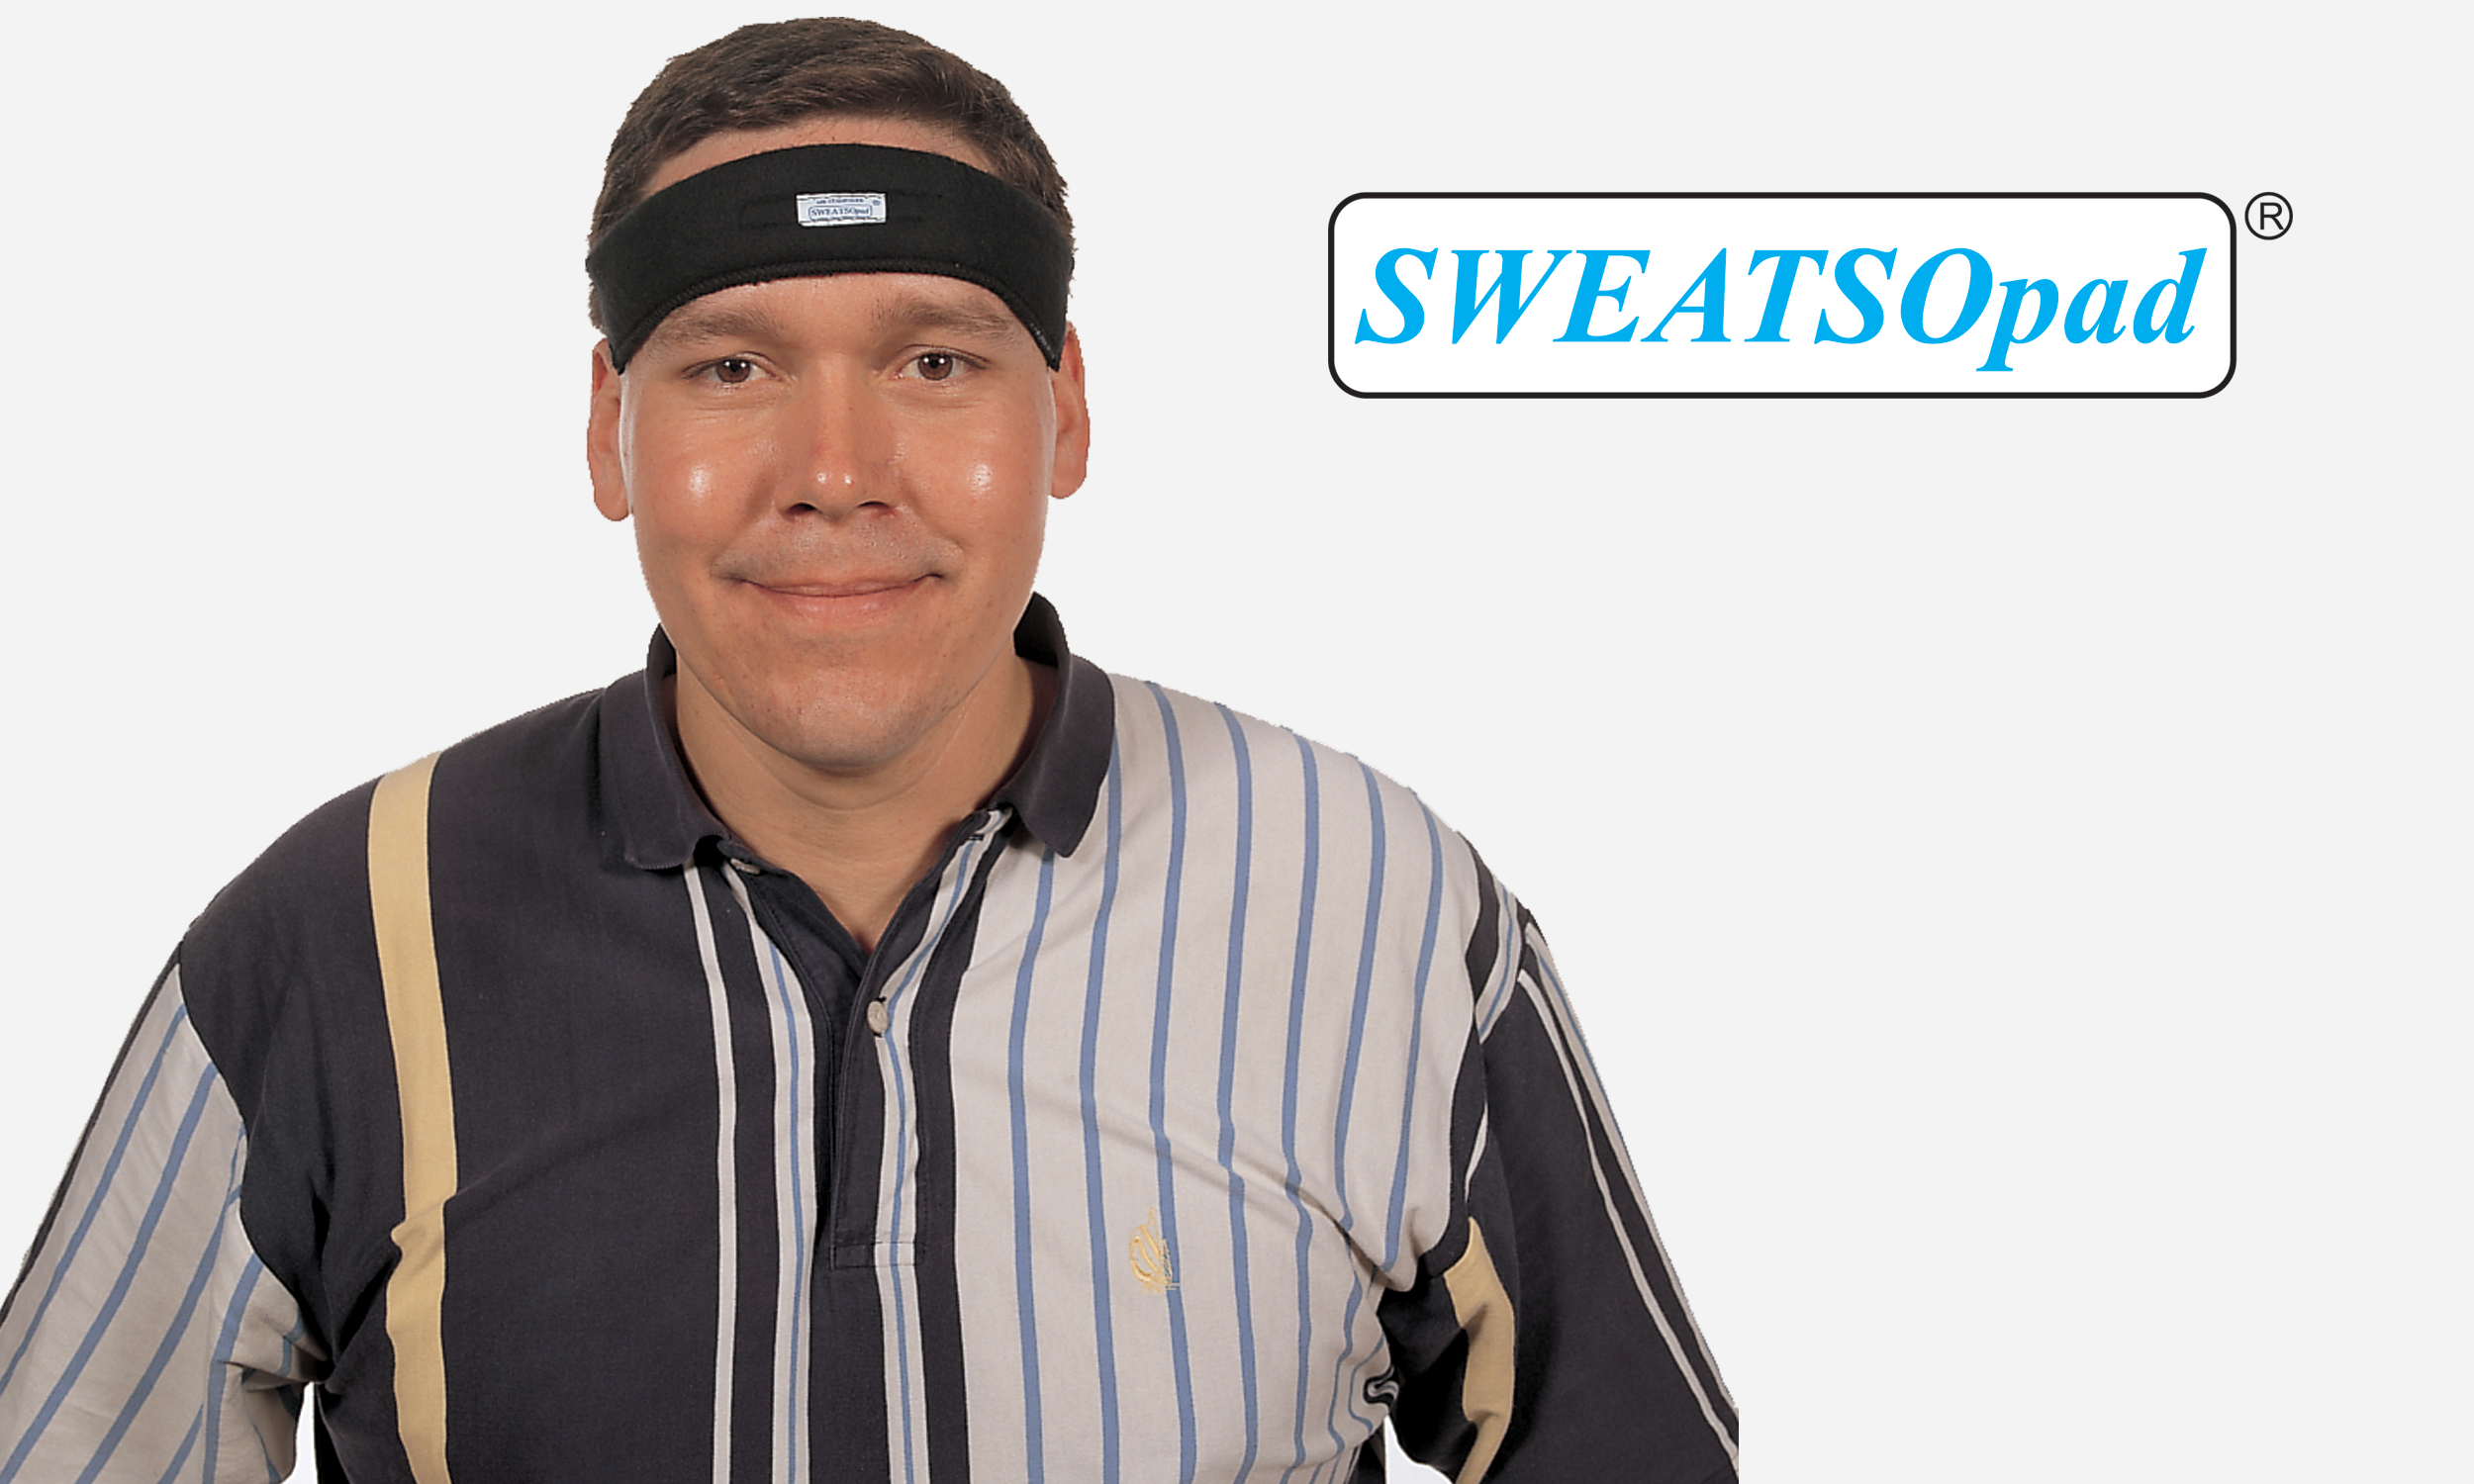 20-3303 Traditional Sweatband.png